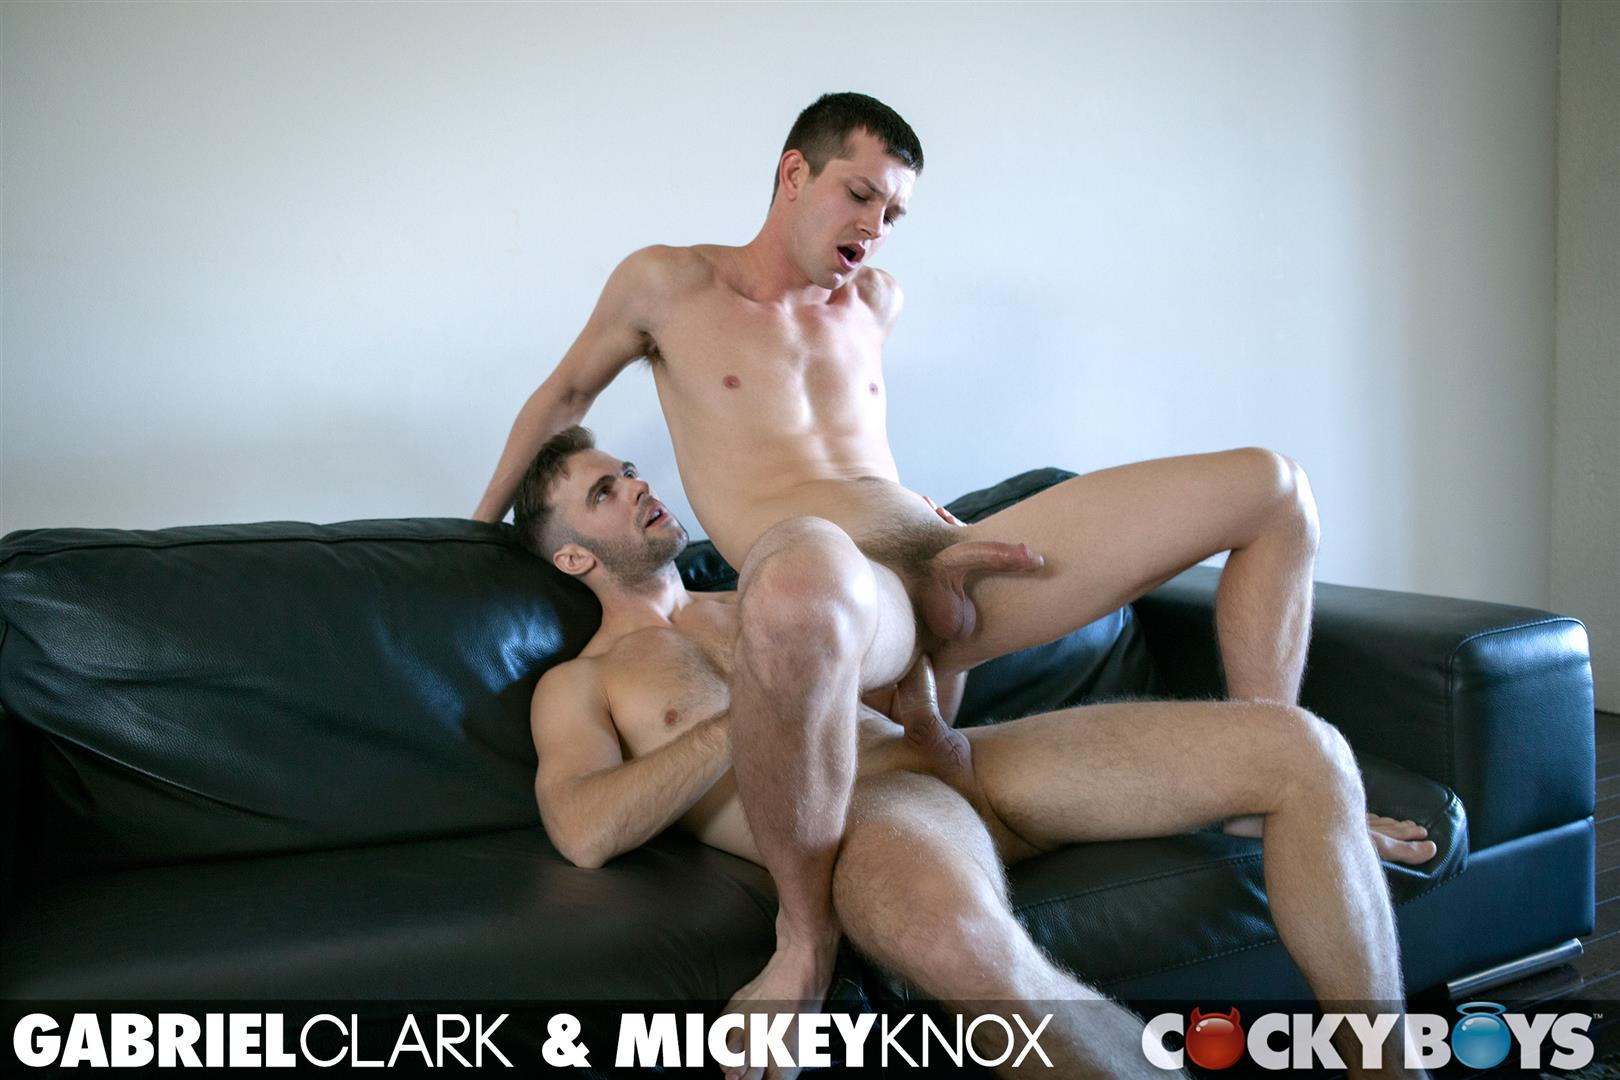 Cockyboys-Mickey-Knox-and-Gabriel-Clark-American-Boys-Thick-Cocks-Fucking-Amateur-Gay-Porn-26 All American Boys Mickey Knox and Gabriel Clark Share A Fuck